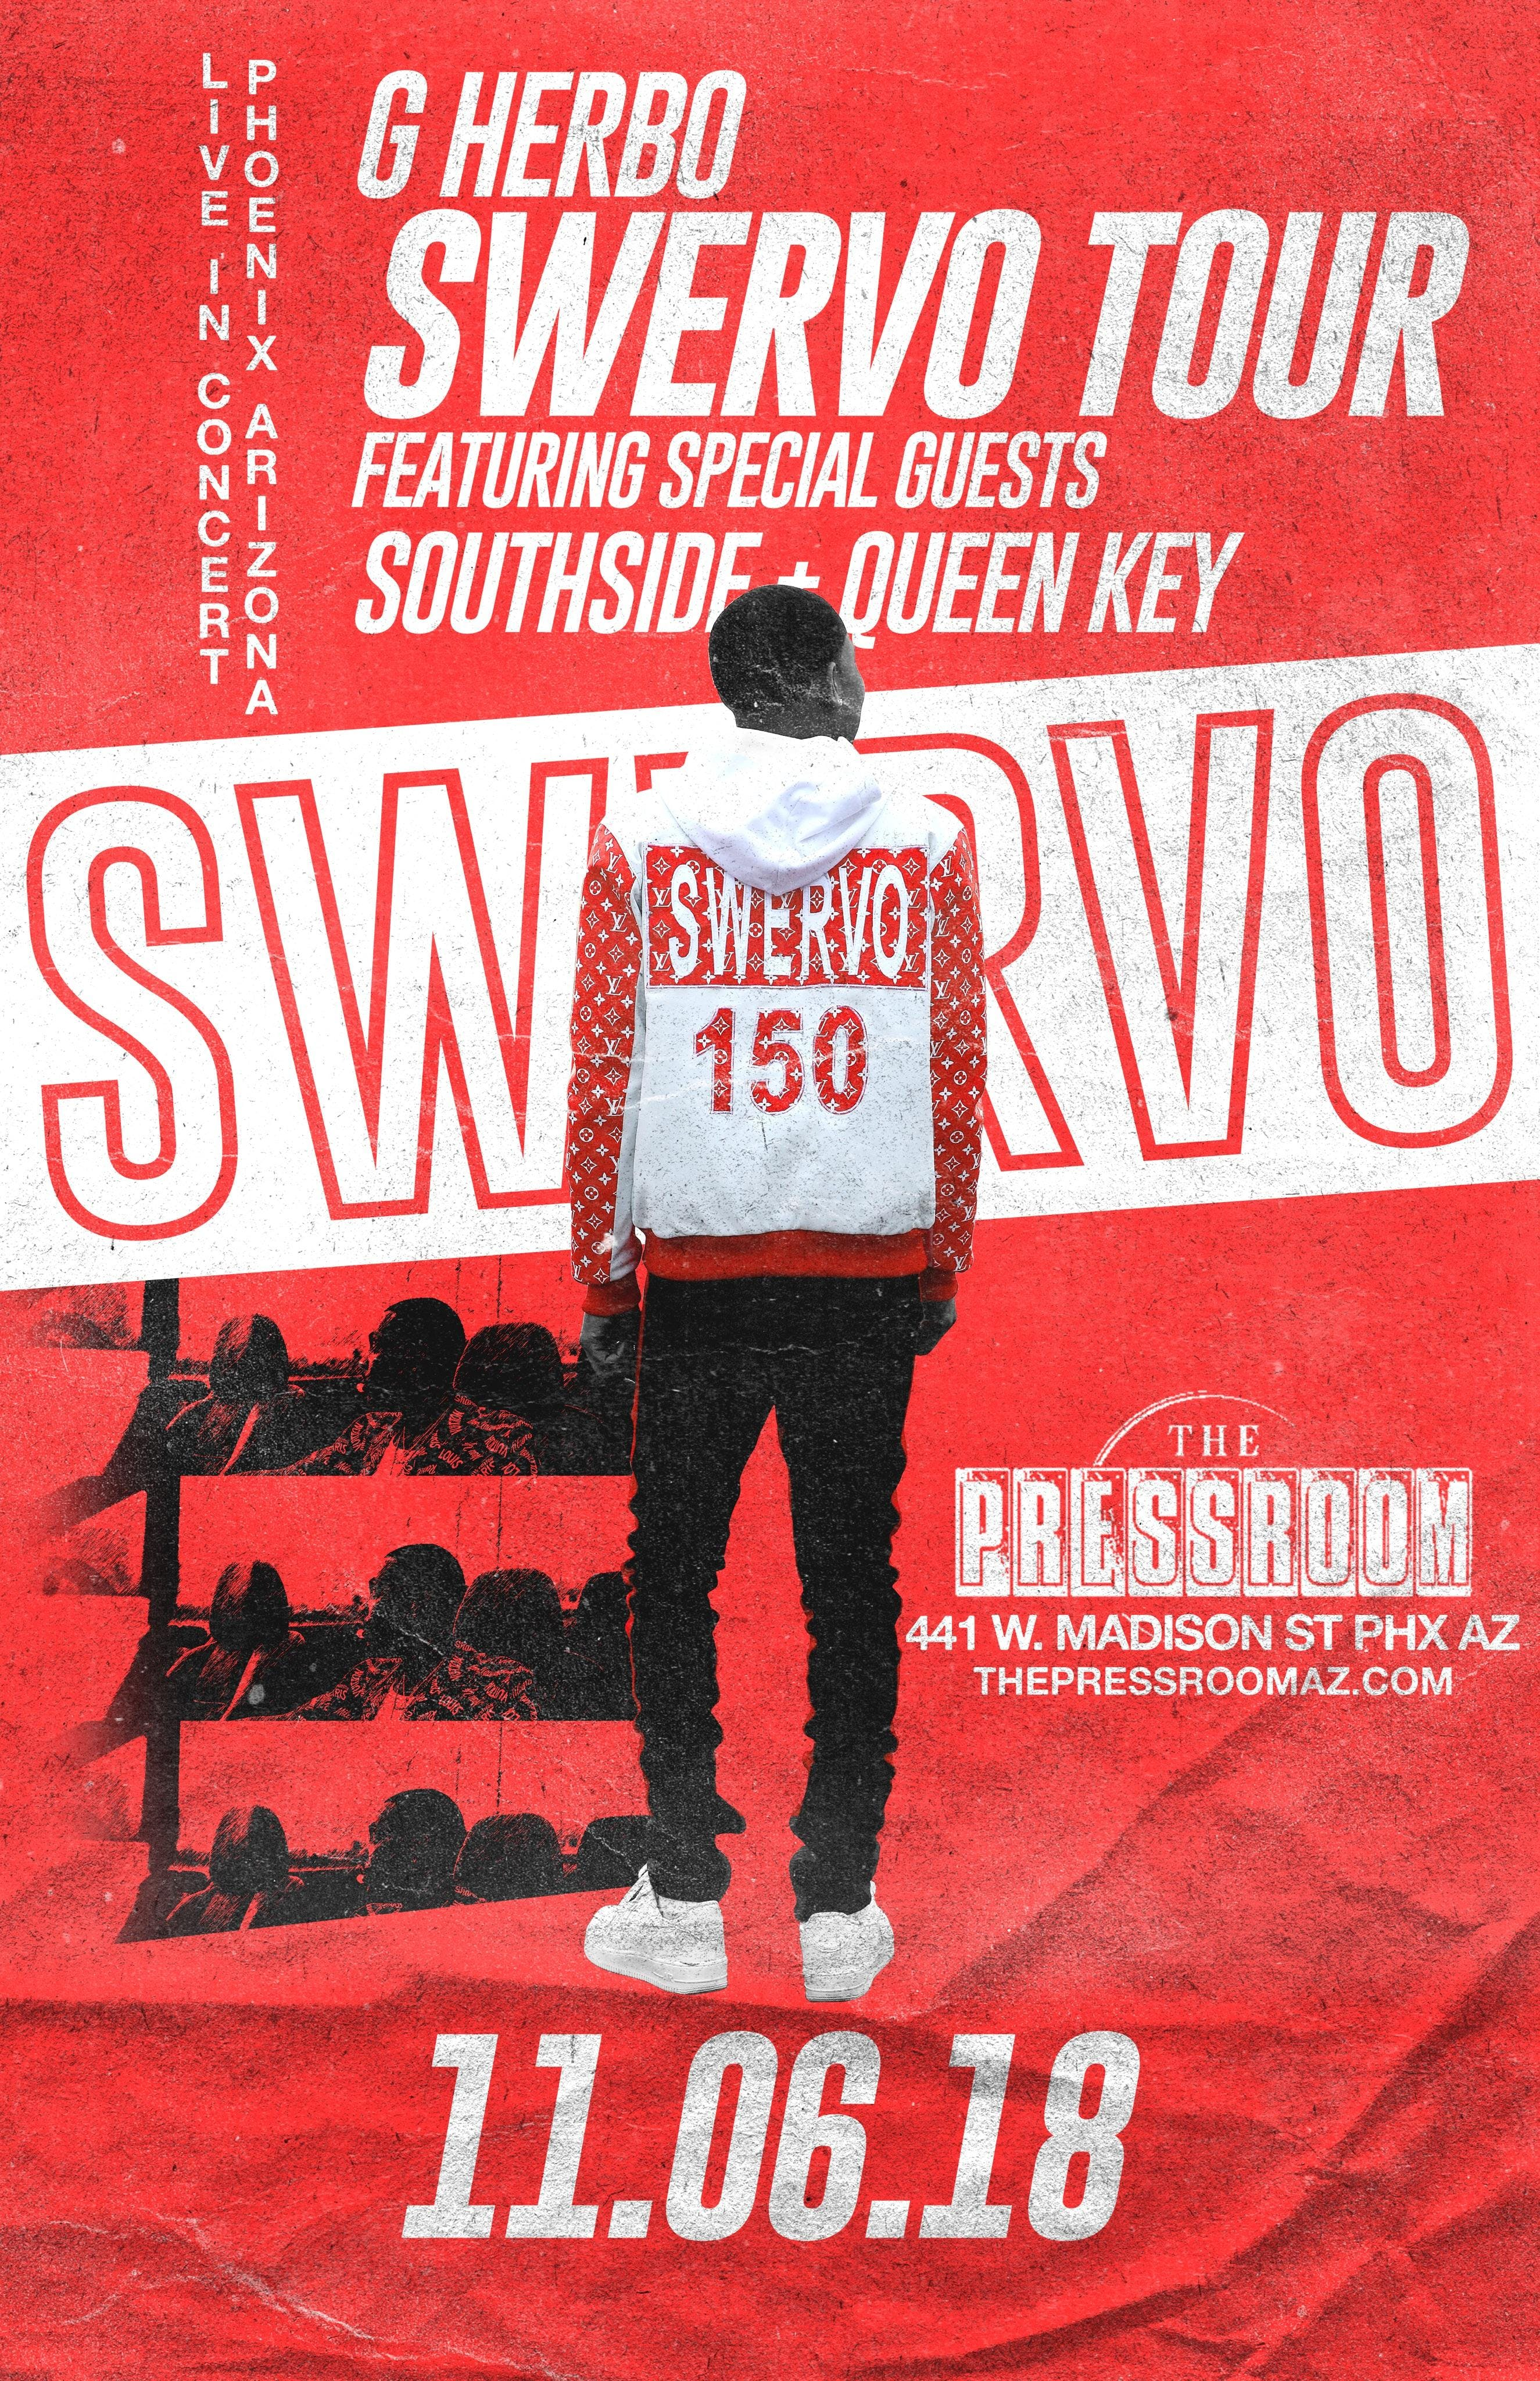 G Herbo w/ special guests Southside, Queen Key, Lil James, Q Money @ The Pressroom